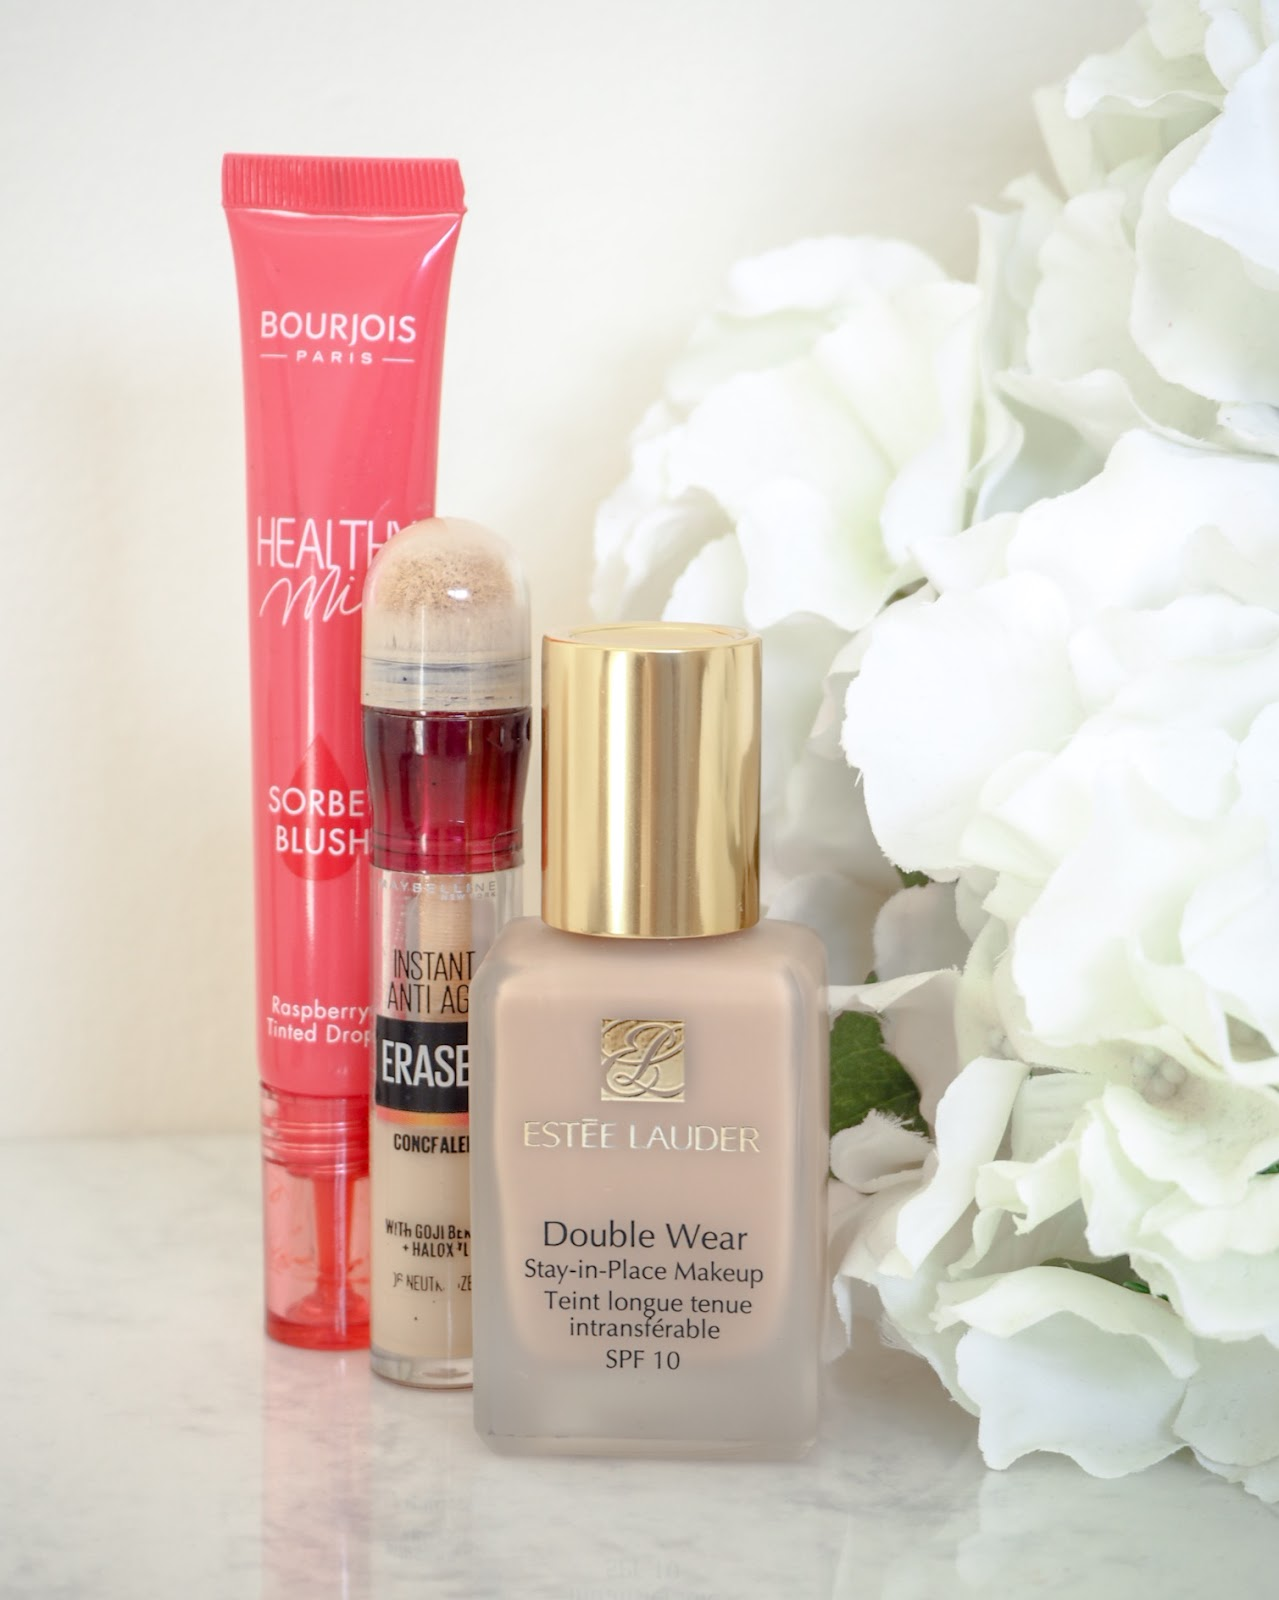 Estee Lauder Double Wear Foundation and Other Make-up Products